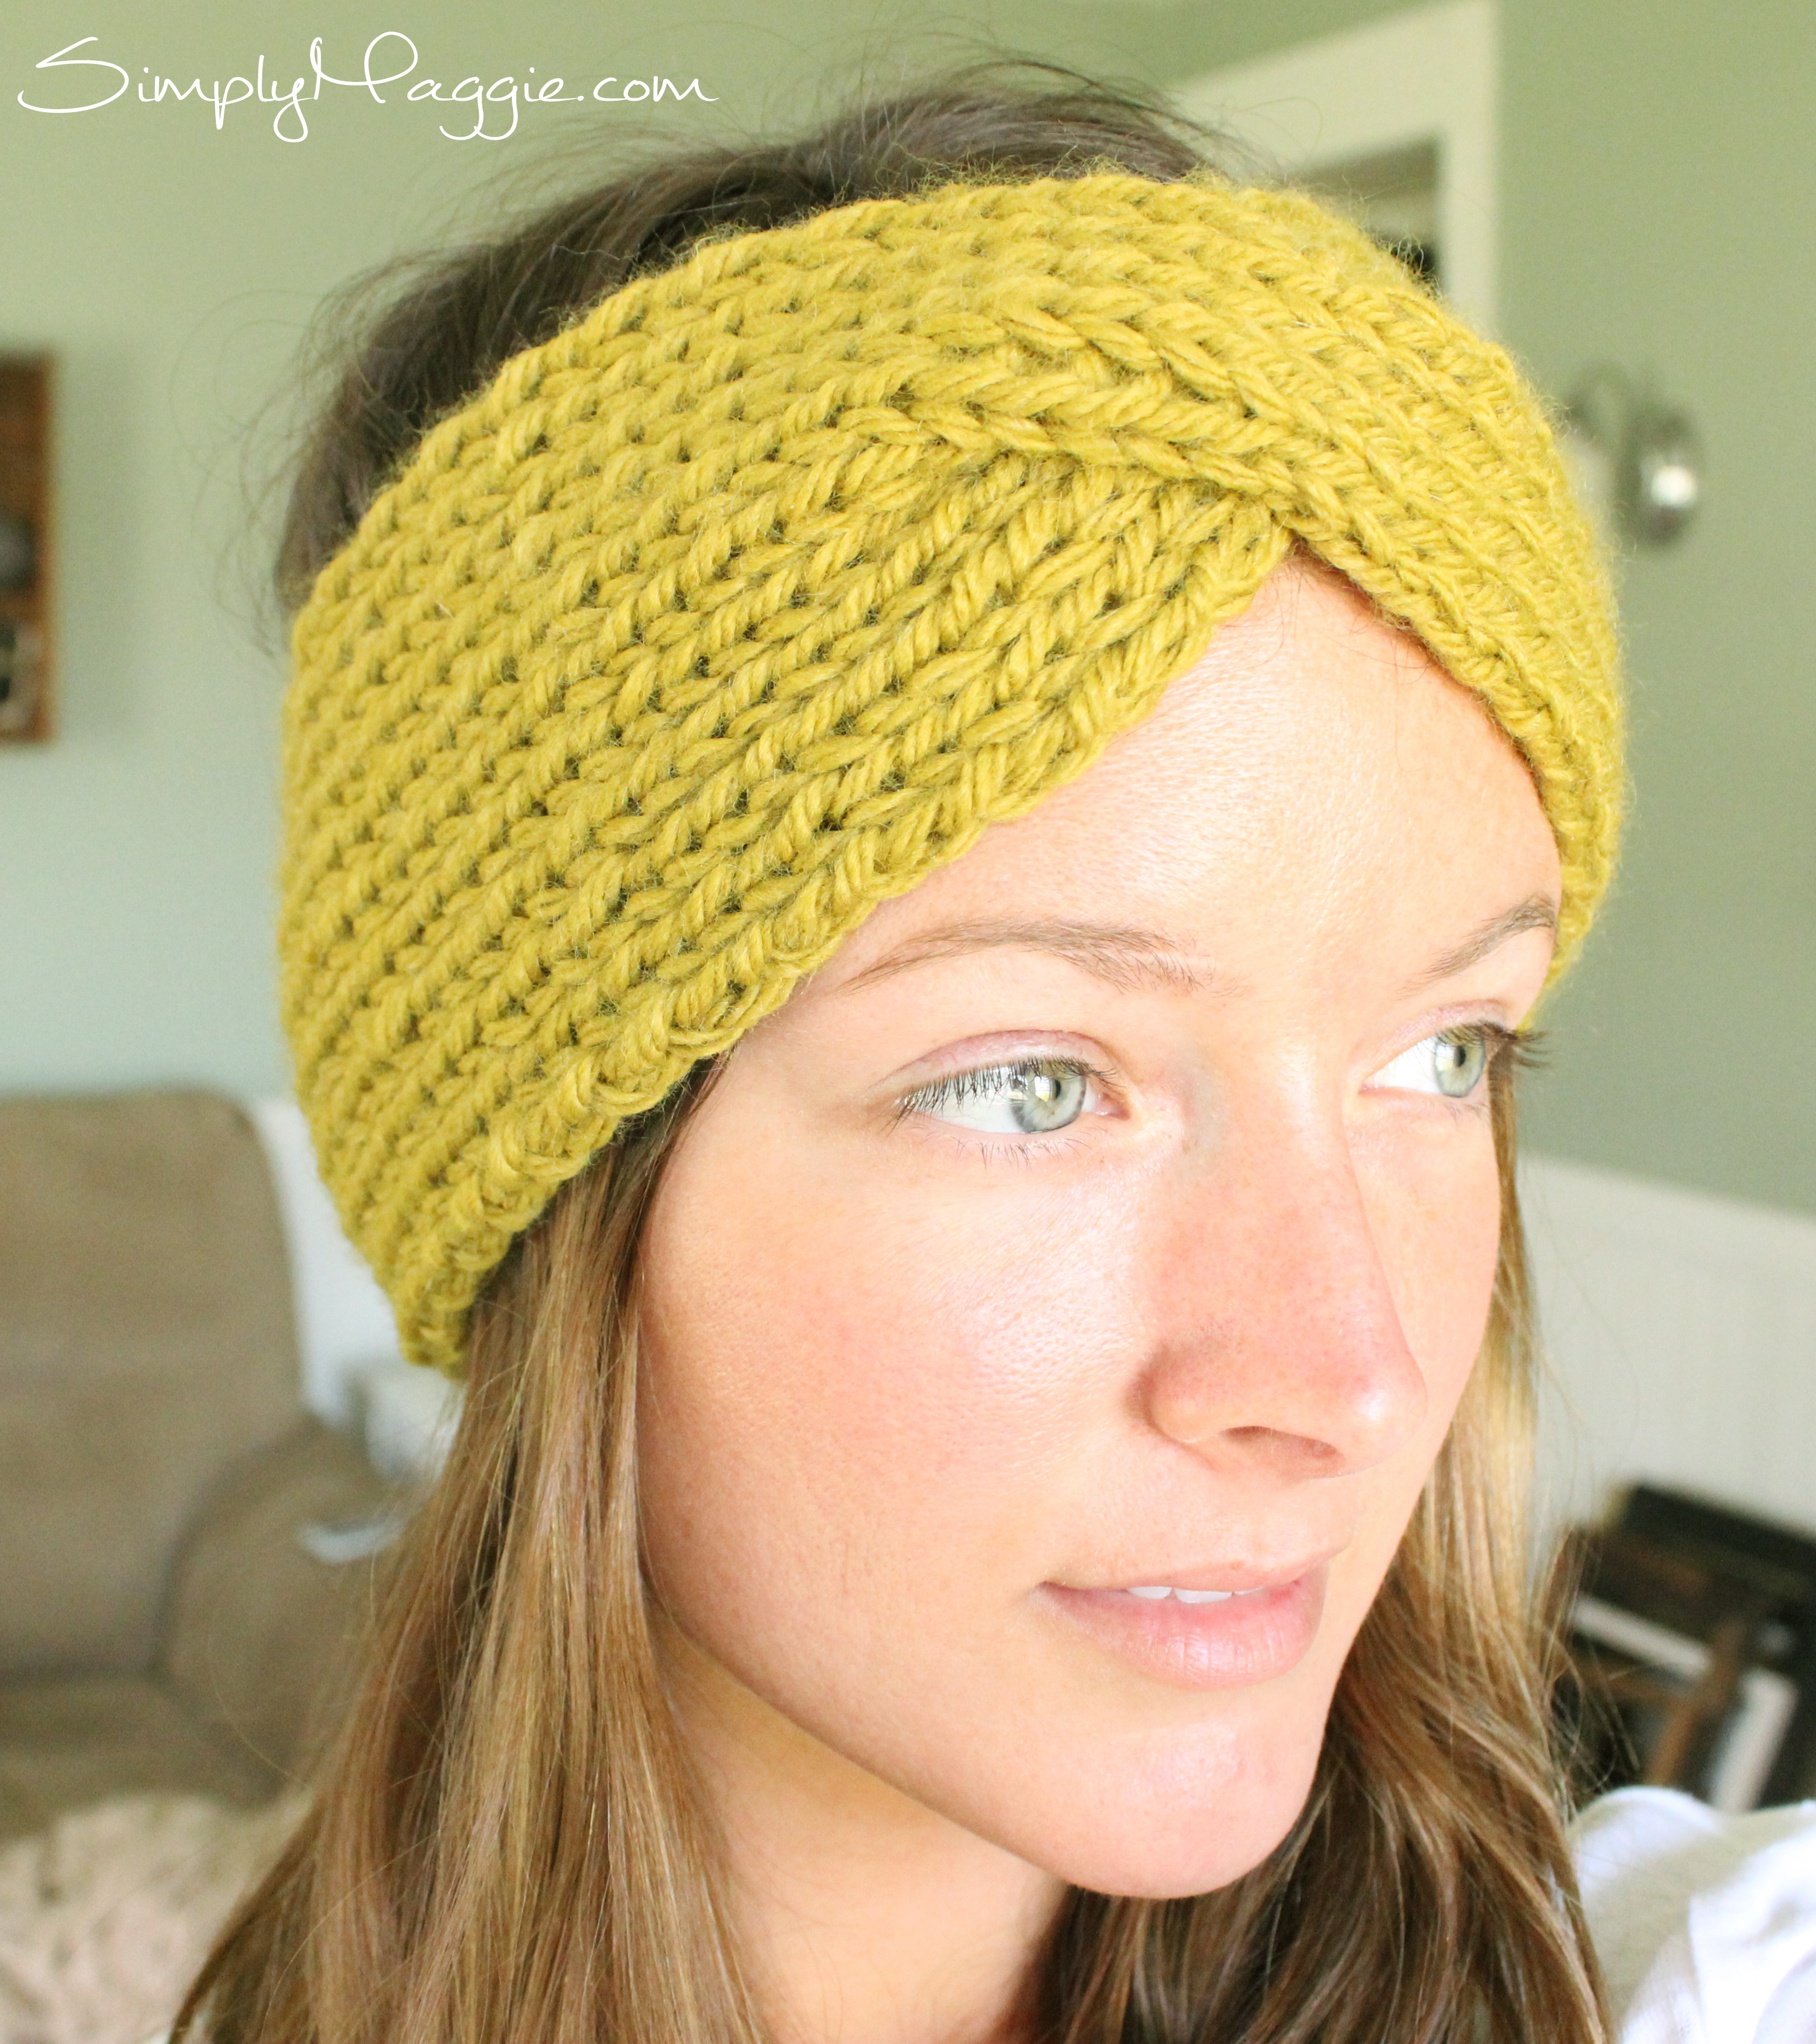 Knit Headband Pattern With Flower Turban Style Knit Headband Simplymaggie